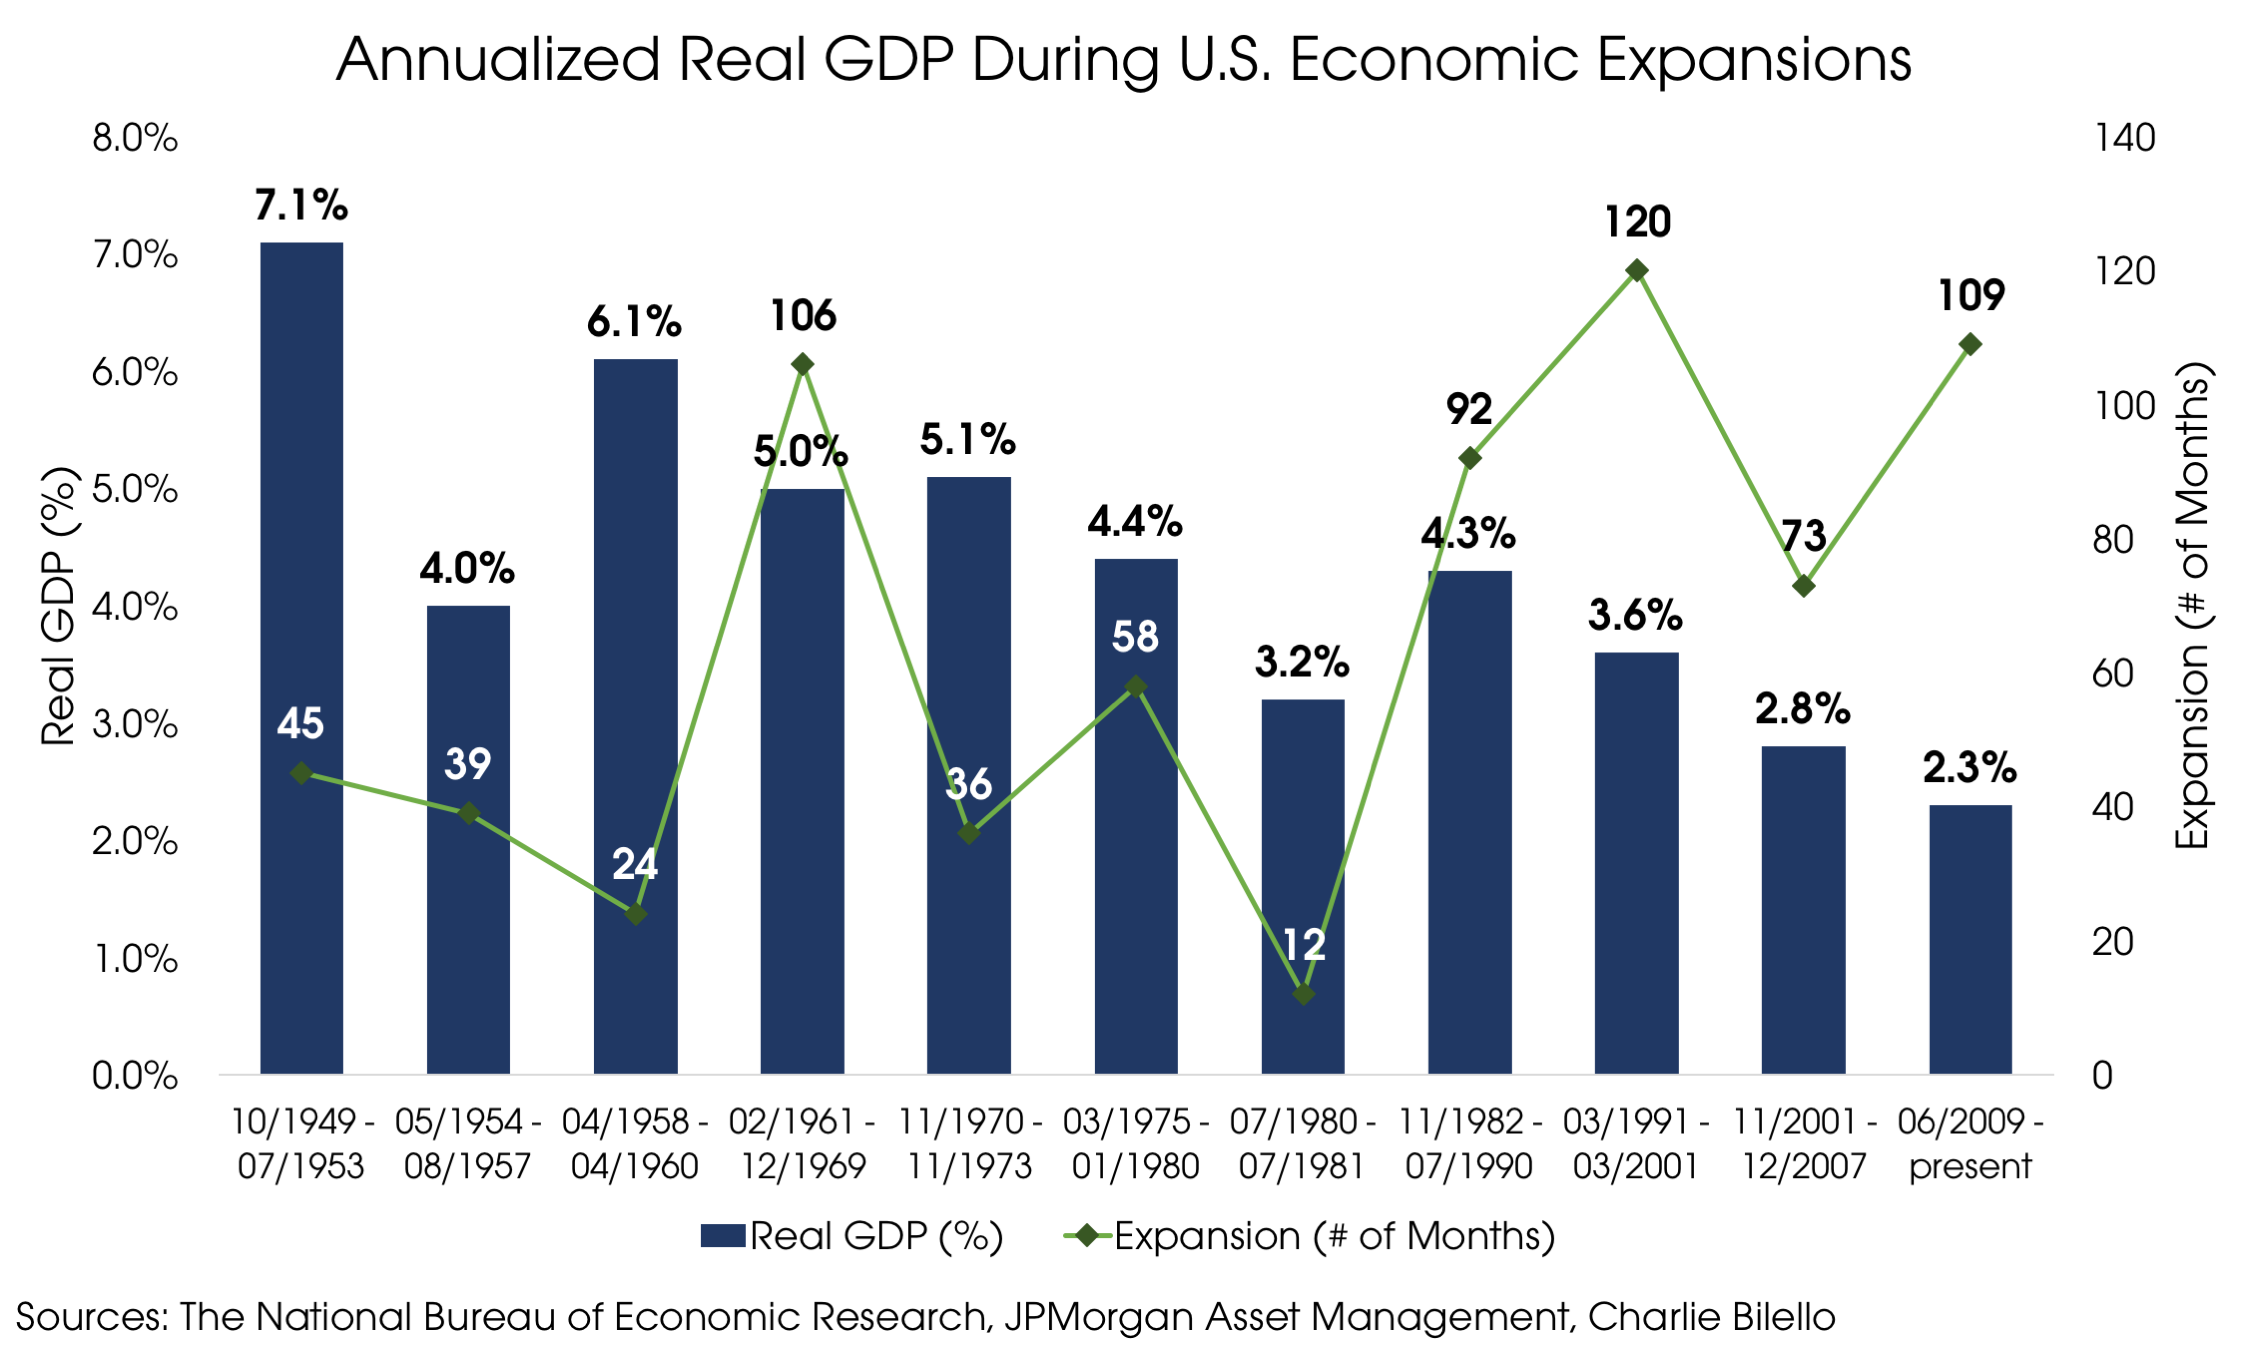 08132018_Annualized Real GDP During US Economic Expansions.png